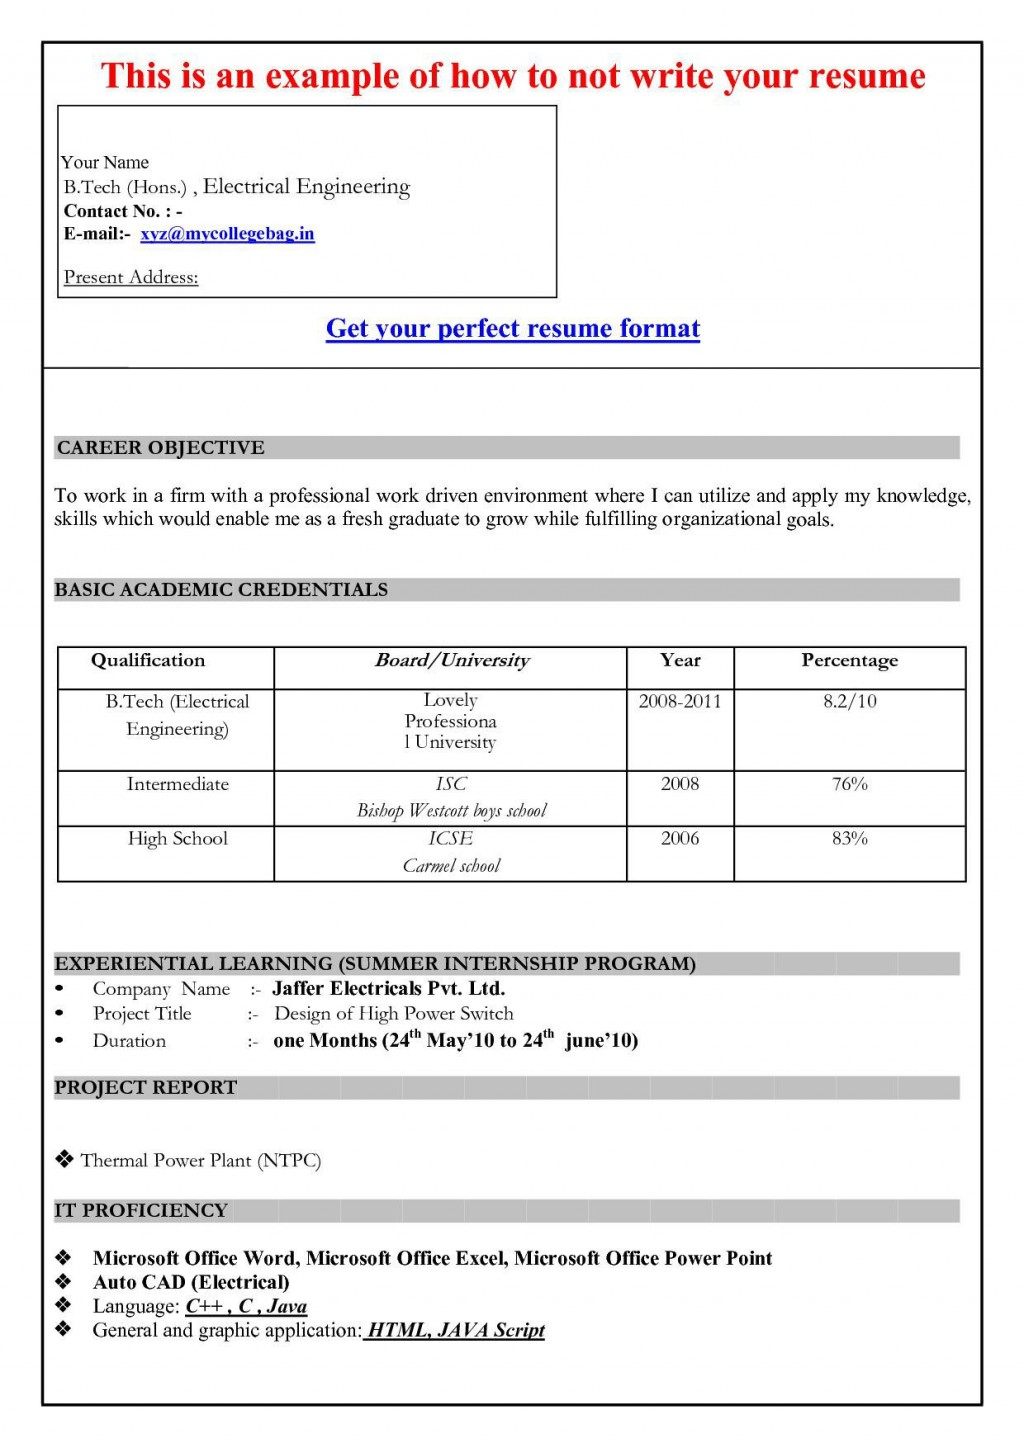 001 Unusual Download Resume Template Word 2007 Idea Large